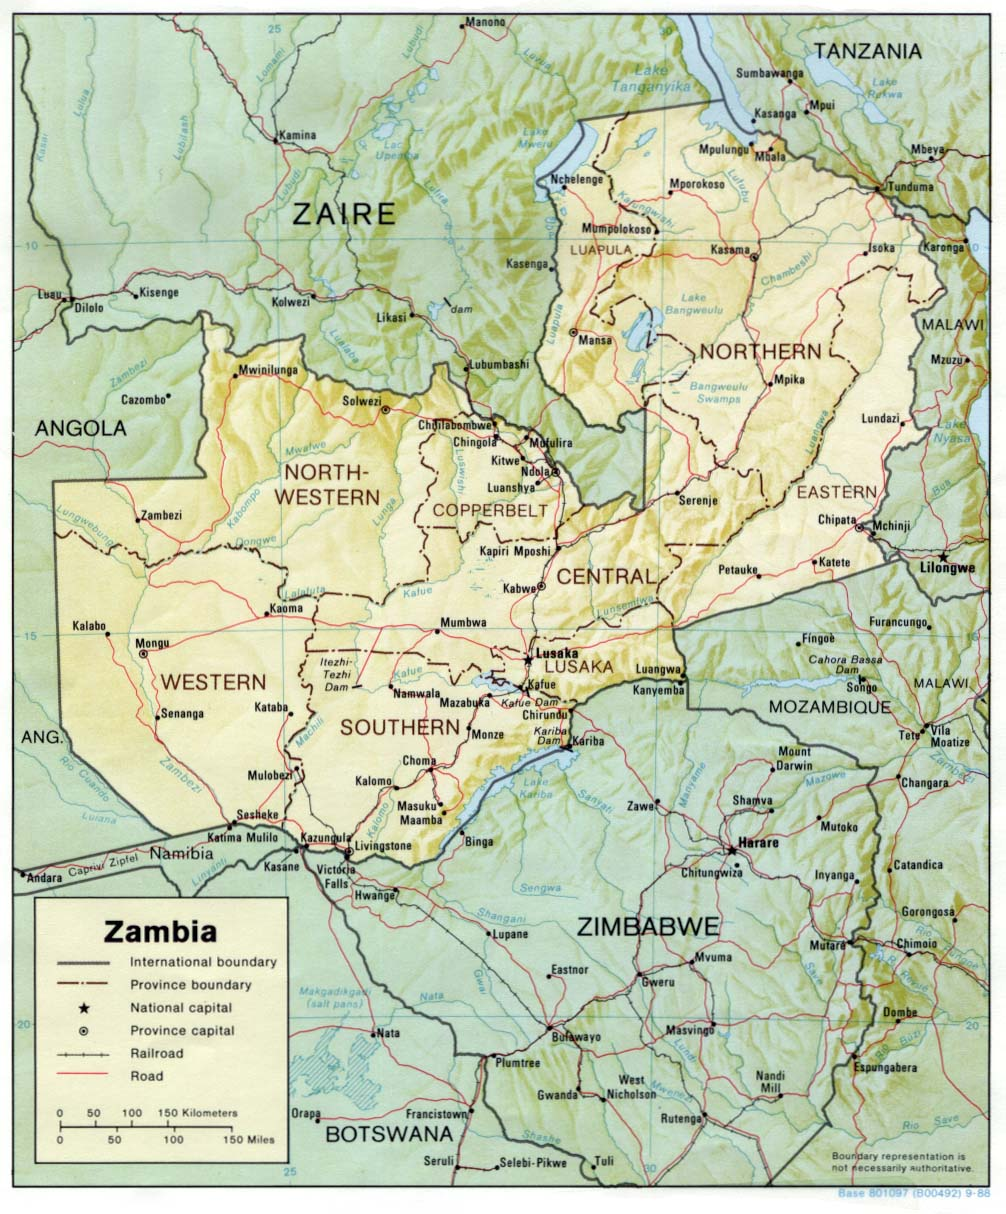 Zambia Maps - Perry-Castañeda Map Collection - UT Library Online